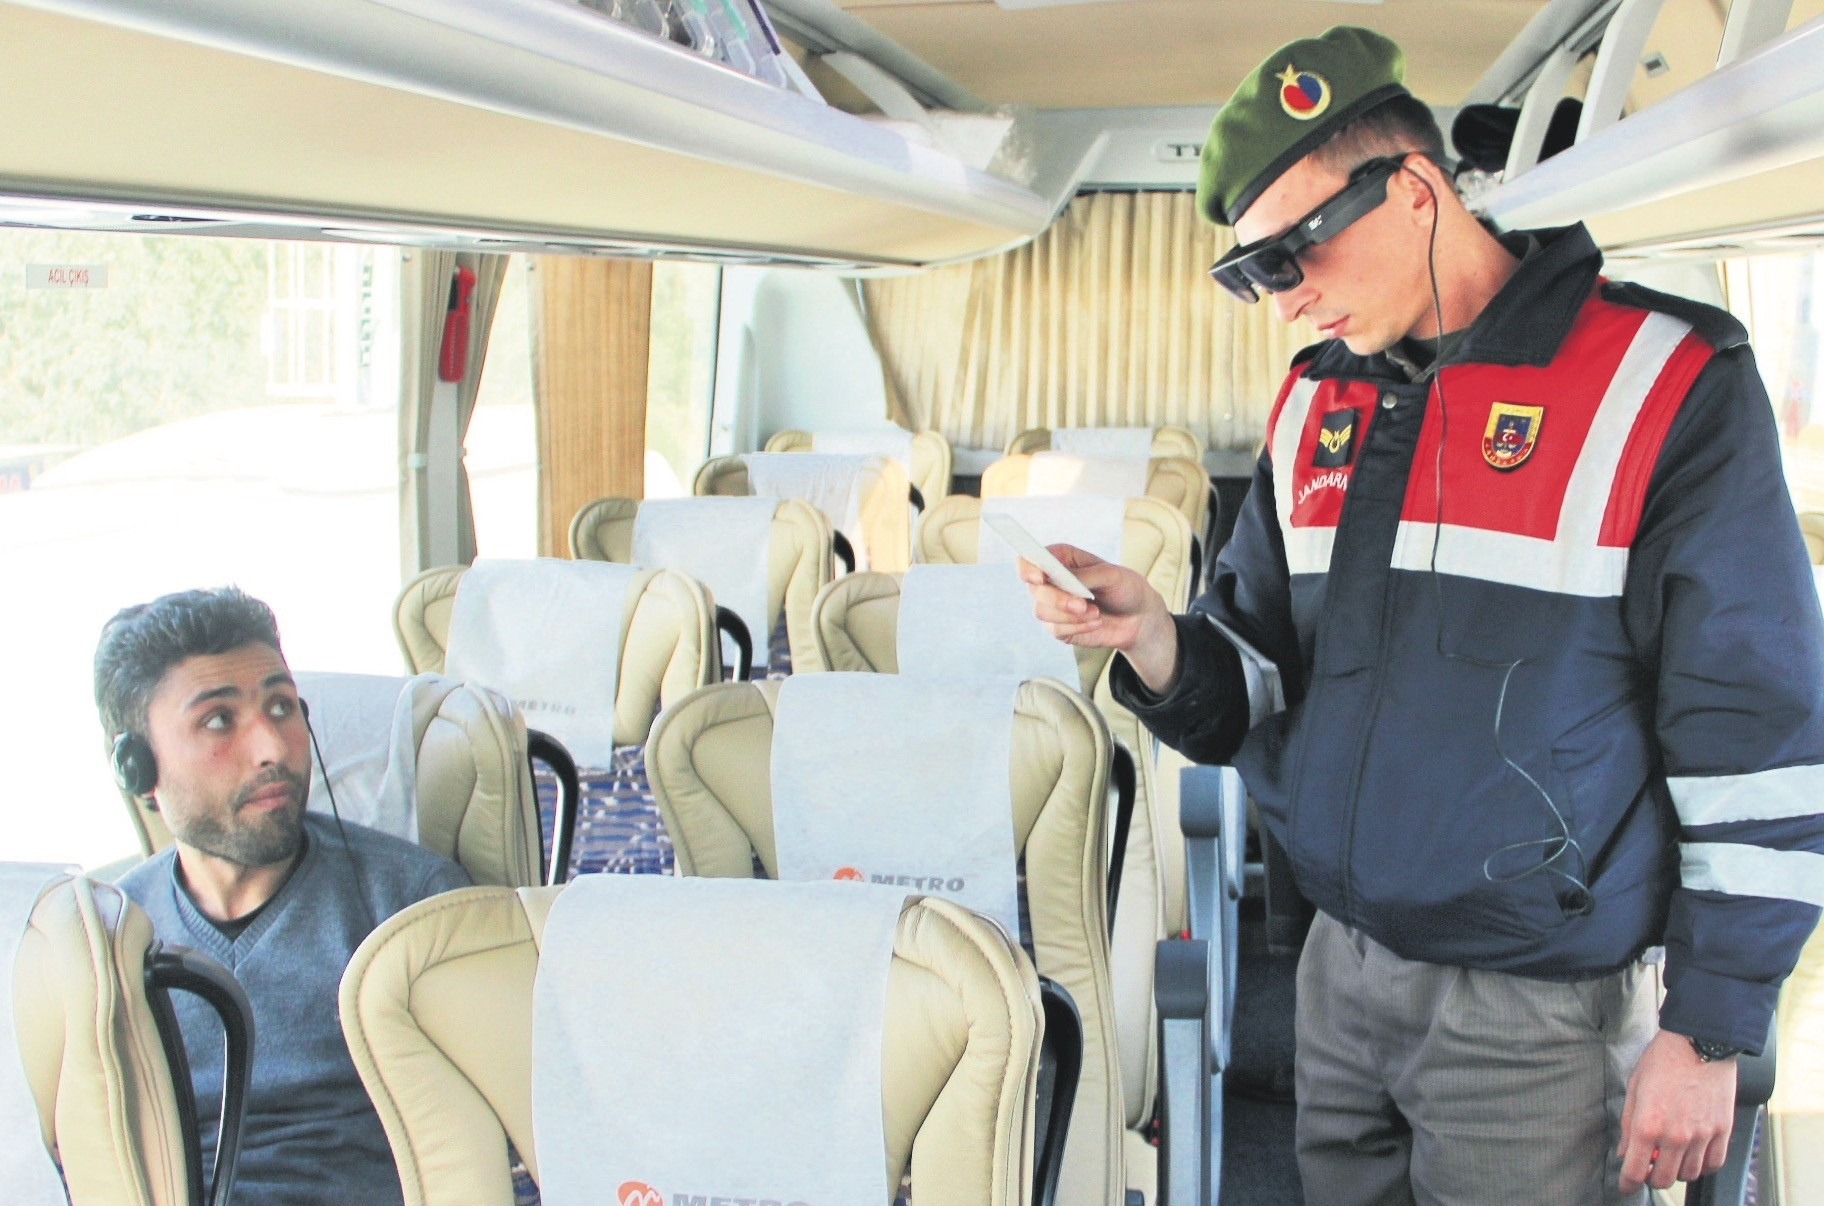 A gendarme checks the ID of a bus passenger with Takbul goggles.